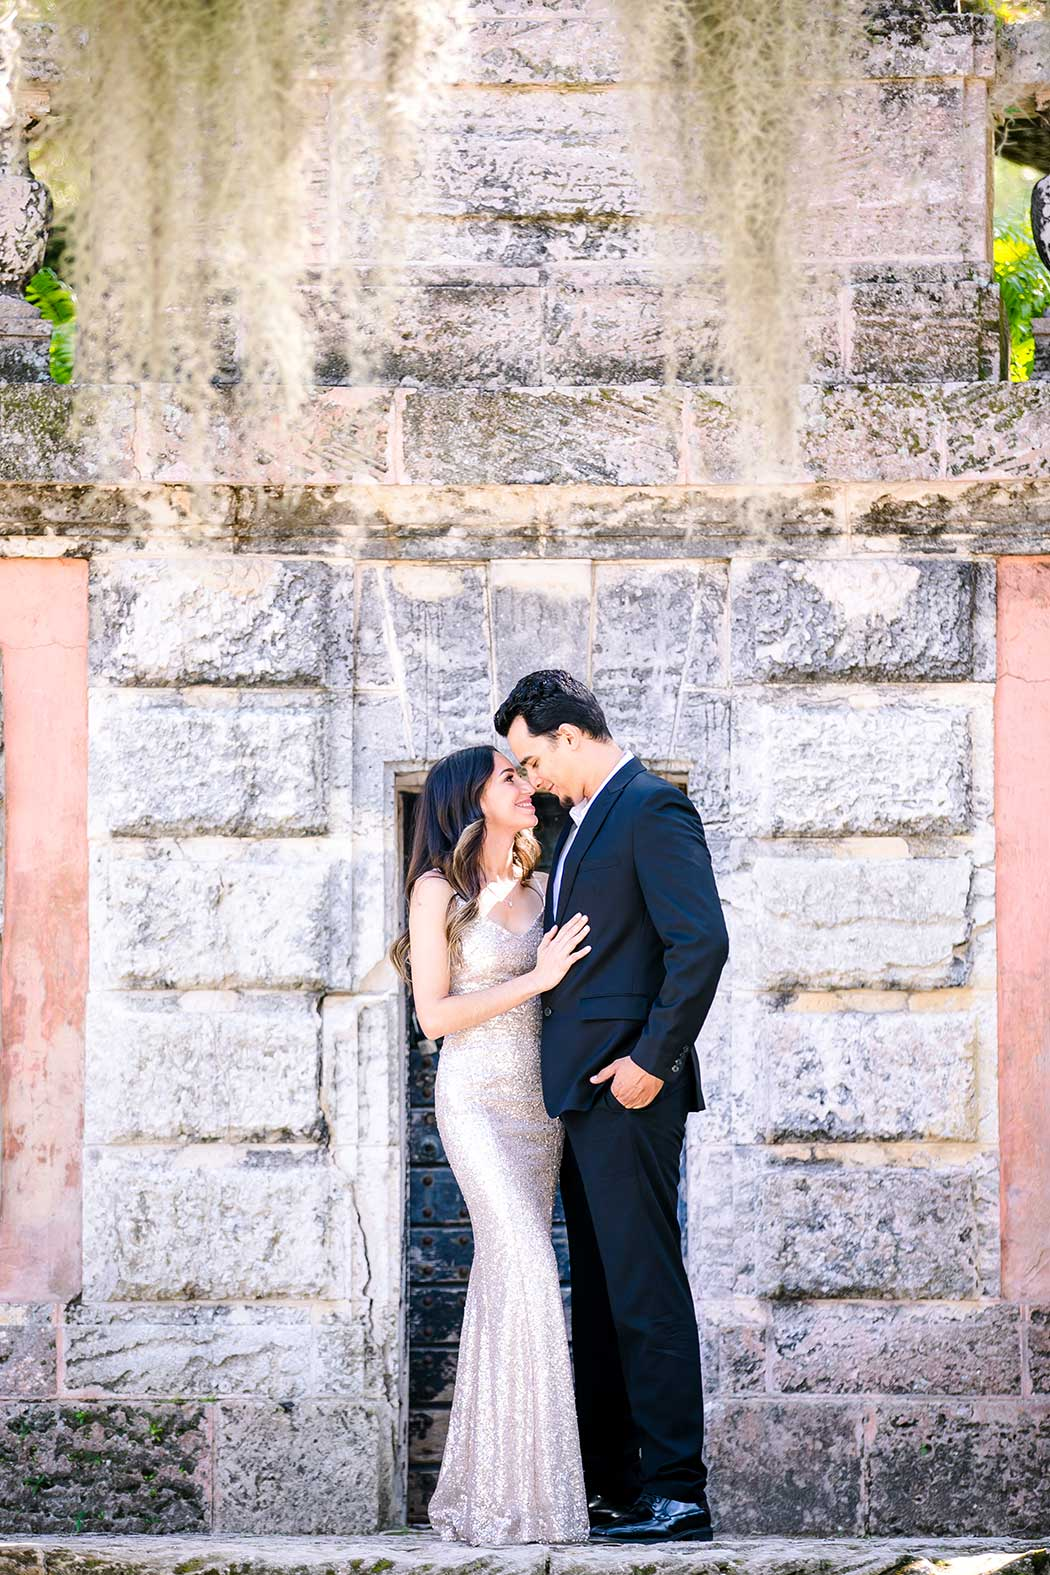 surprise proposal photoshoot at vizcaya miami | fort lauderdale engagement photographer | vizcaya engagement photoshoot